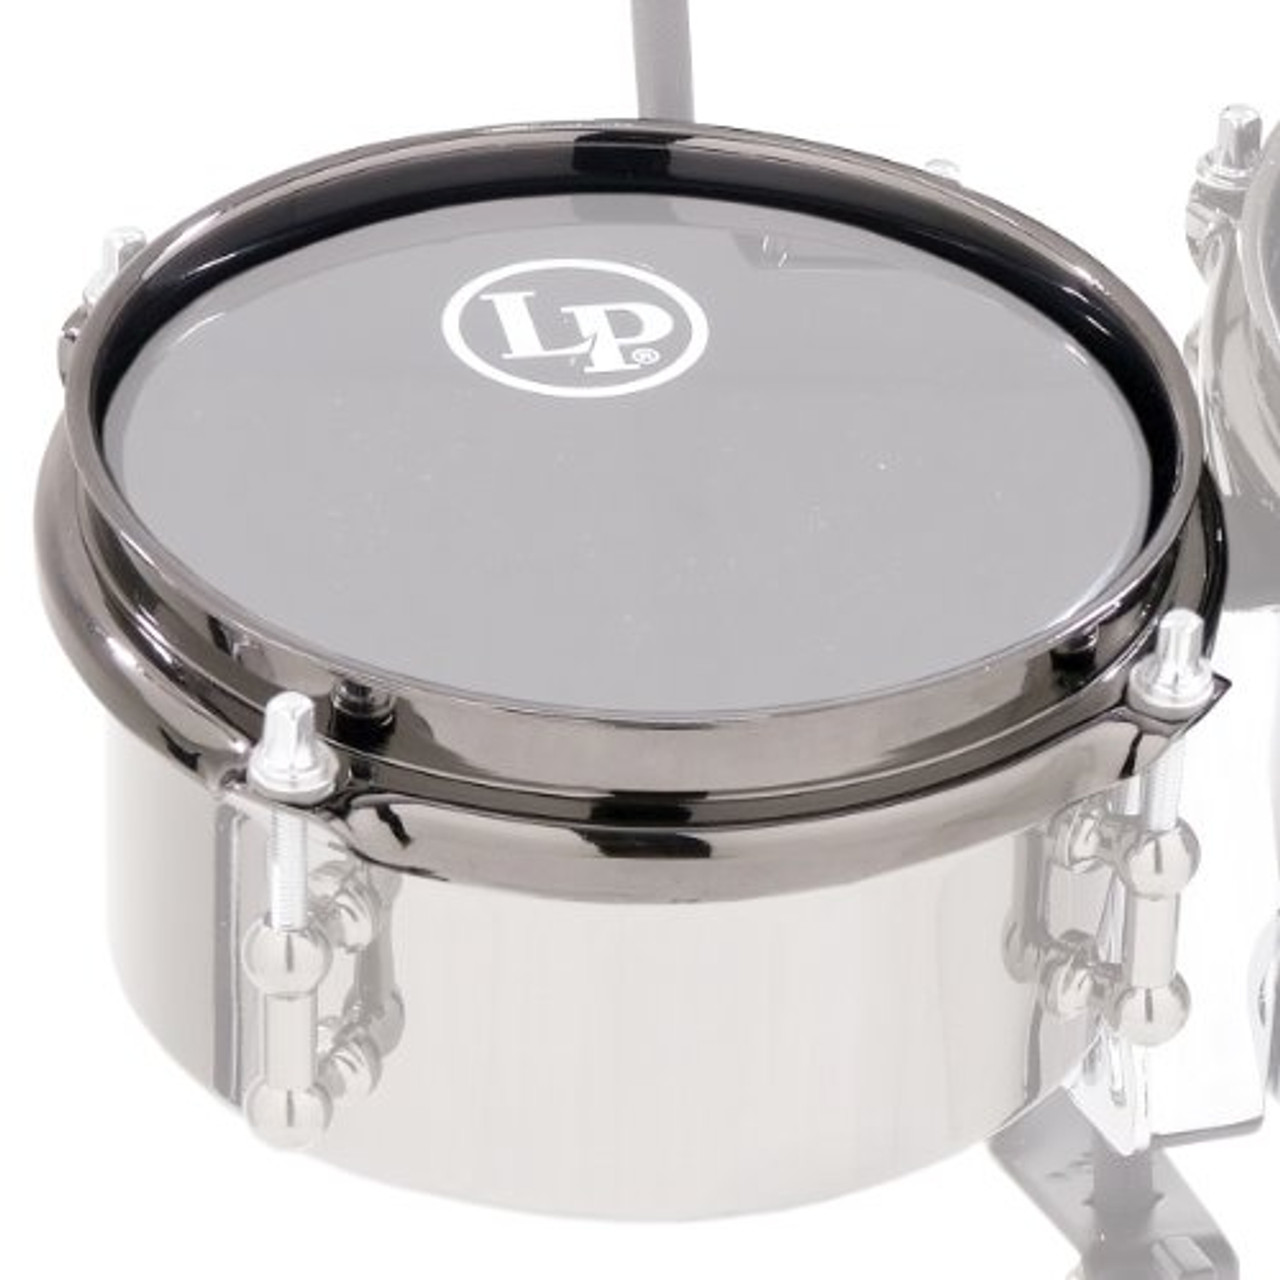 Drum Workshop Lp845-Jd 6 in Rim Black Nickel